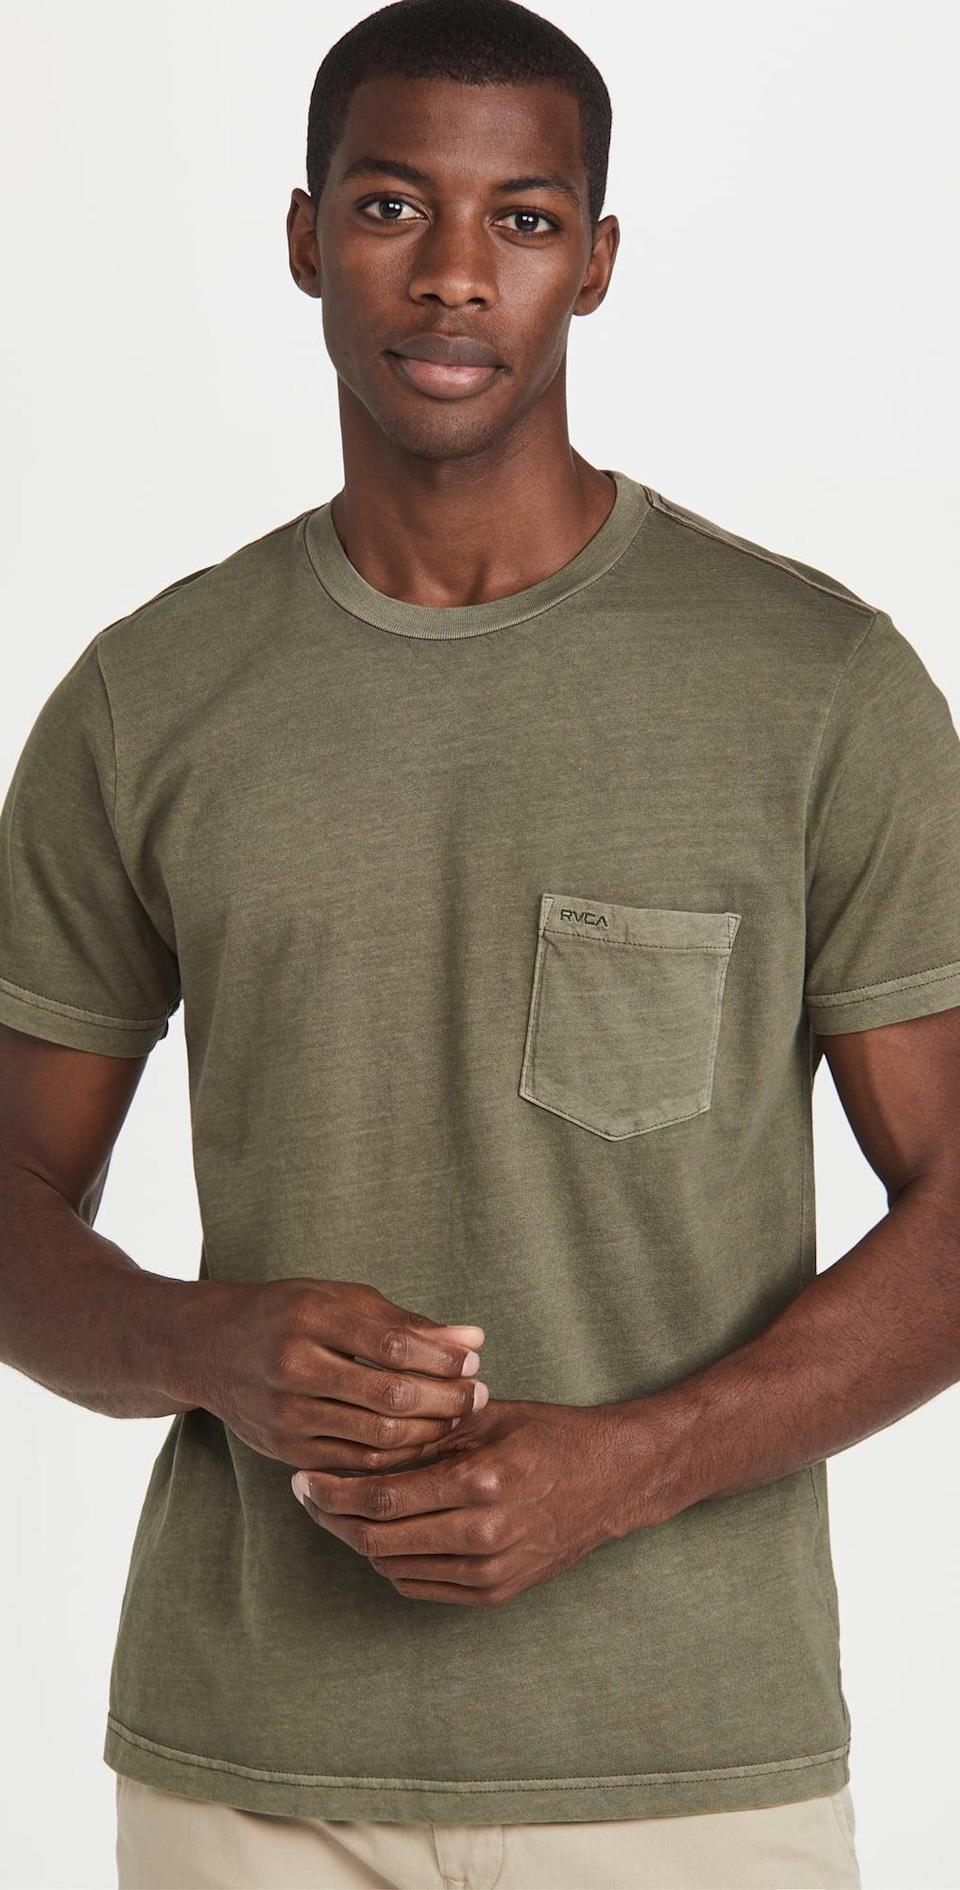 <p>This <span>RVCA Ptc 2 Pigment Tee</span> ($30) is the answer to lazy days when you don't feel like getting dressed. It's as perfect for a quick outing as it is for getting back in bed.</p>